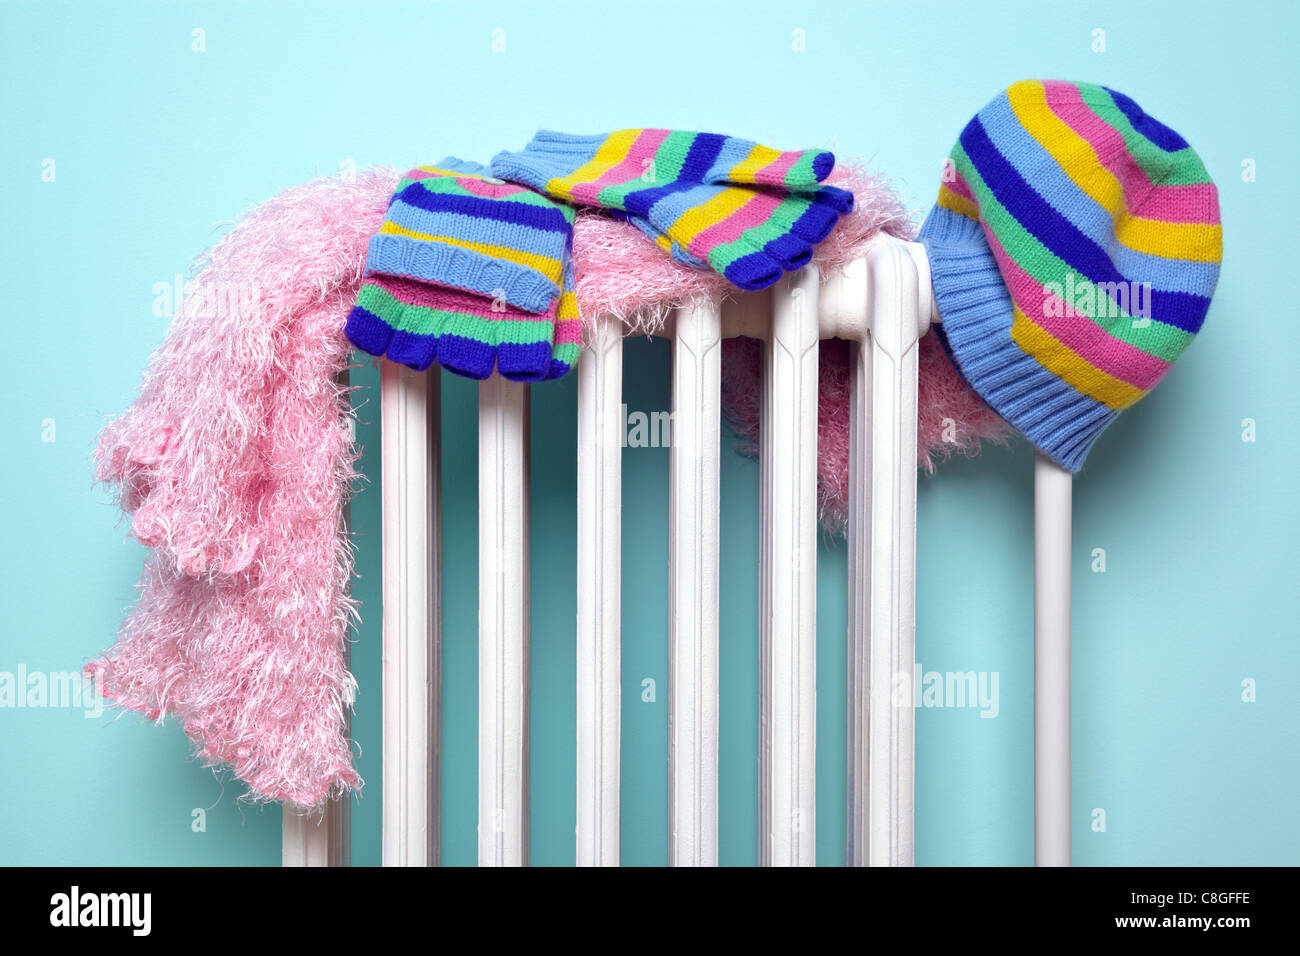 Photo of a girls hat, scarf and gloves drying on an old traditional cast iron radiator, good image for winter related - Stock Image